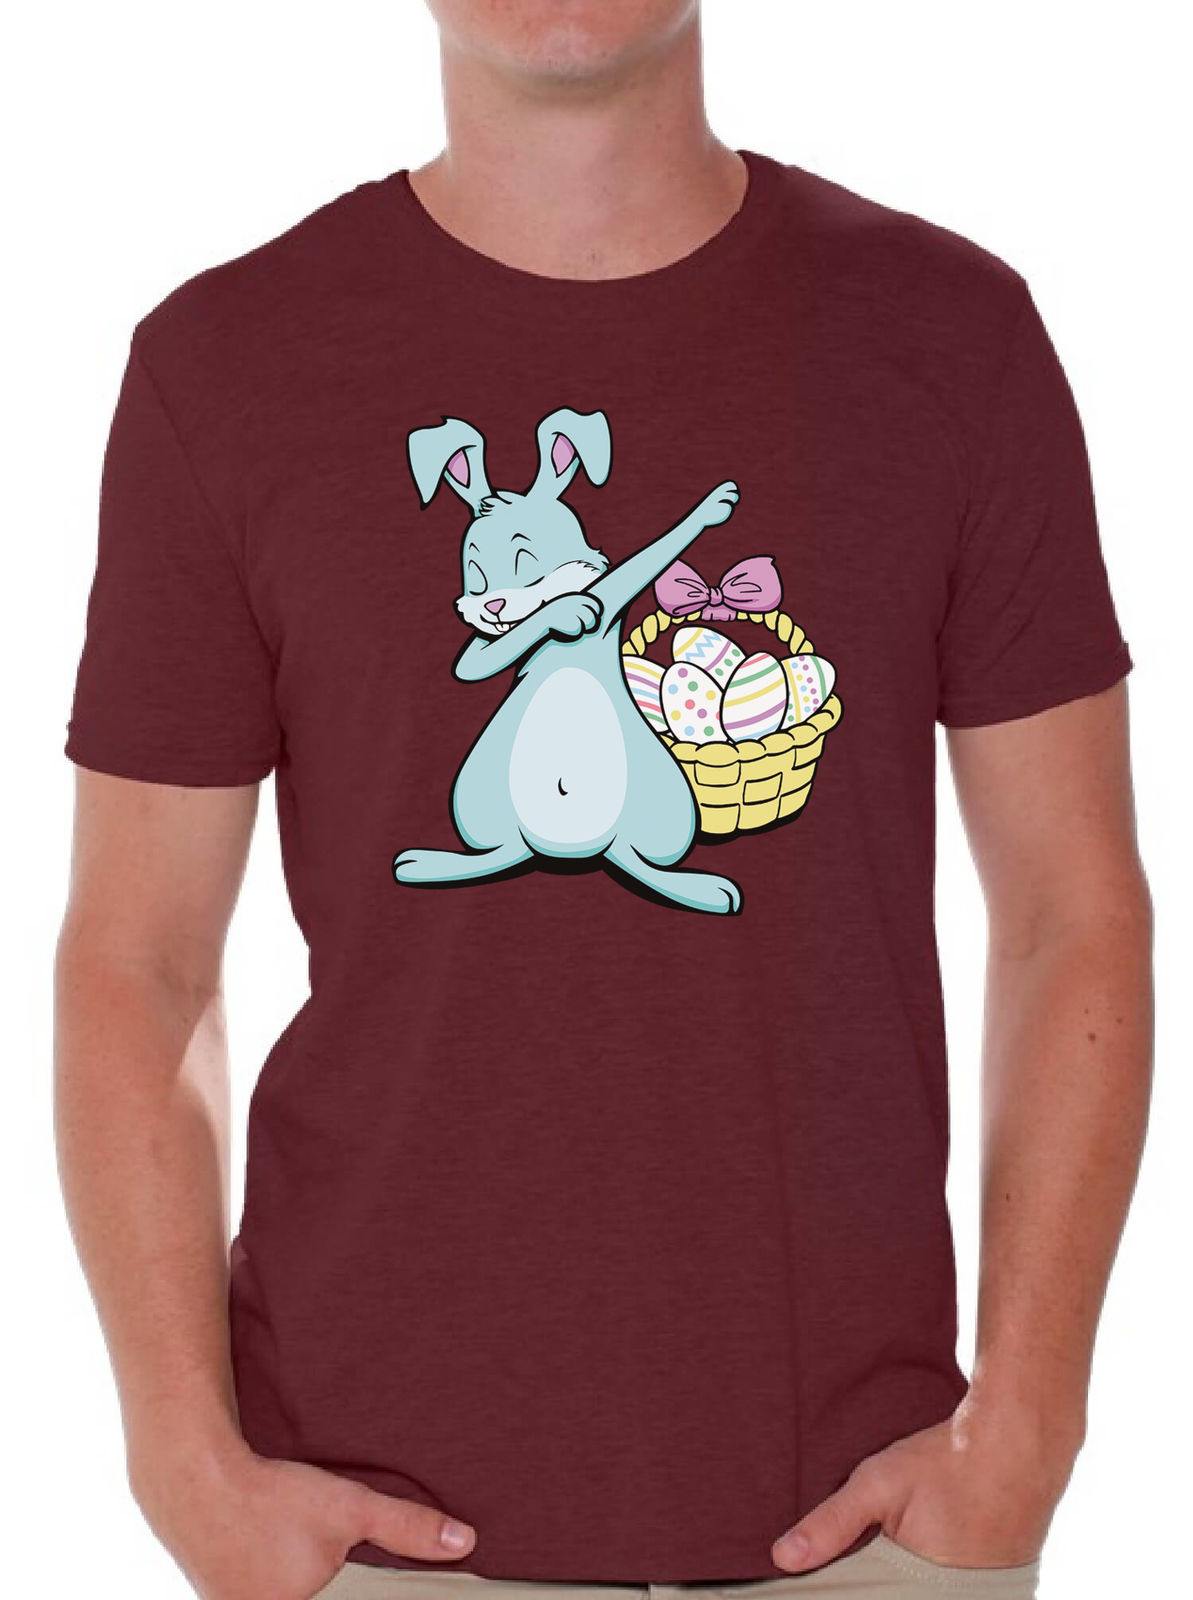 Dabbing easter bunny shirt easter shirt for men happy easter shirt dabbing easter bunny shirt easter shirt for men happy easter shirt easter gifts original tops novelty in t shirts from mens clothing accessories on negle